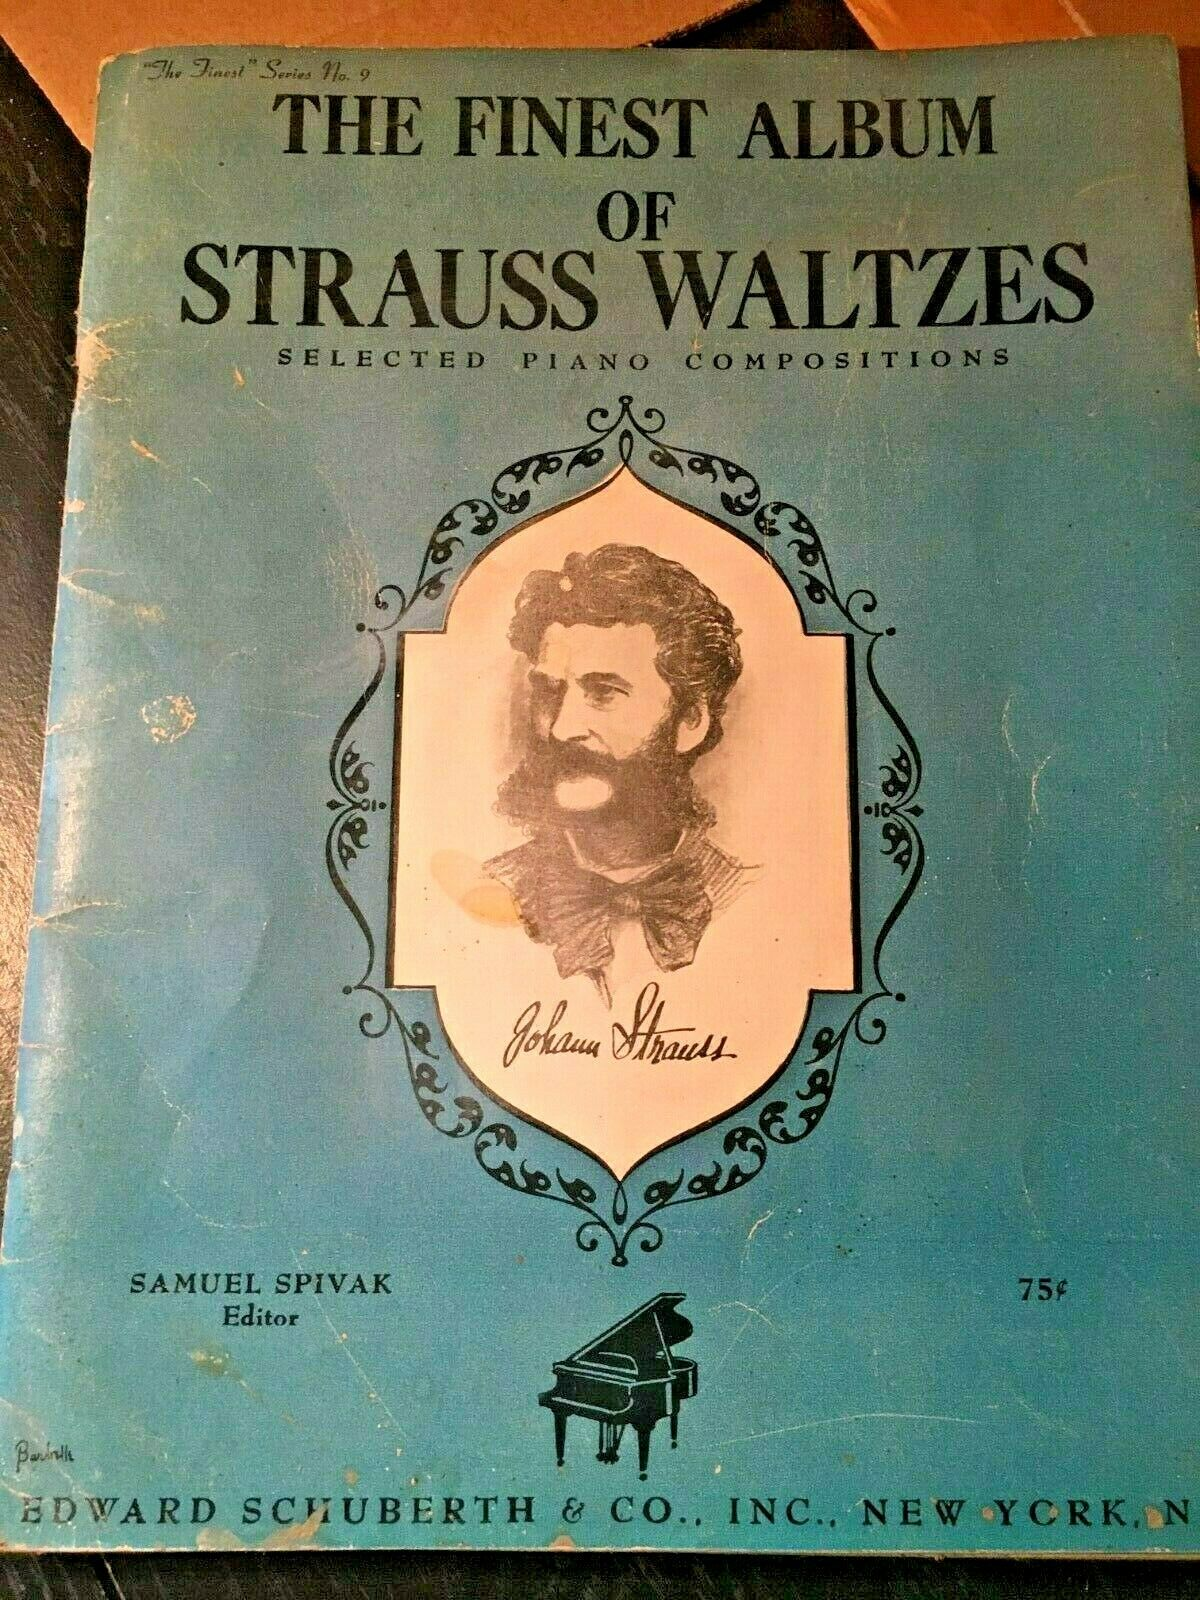 1945 Album Of Waltzes By Johann Strauss For Piano Vintage Music Book - $1.99